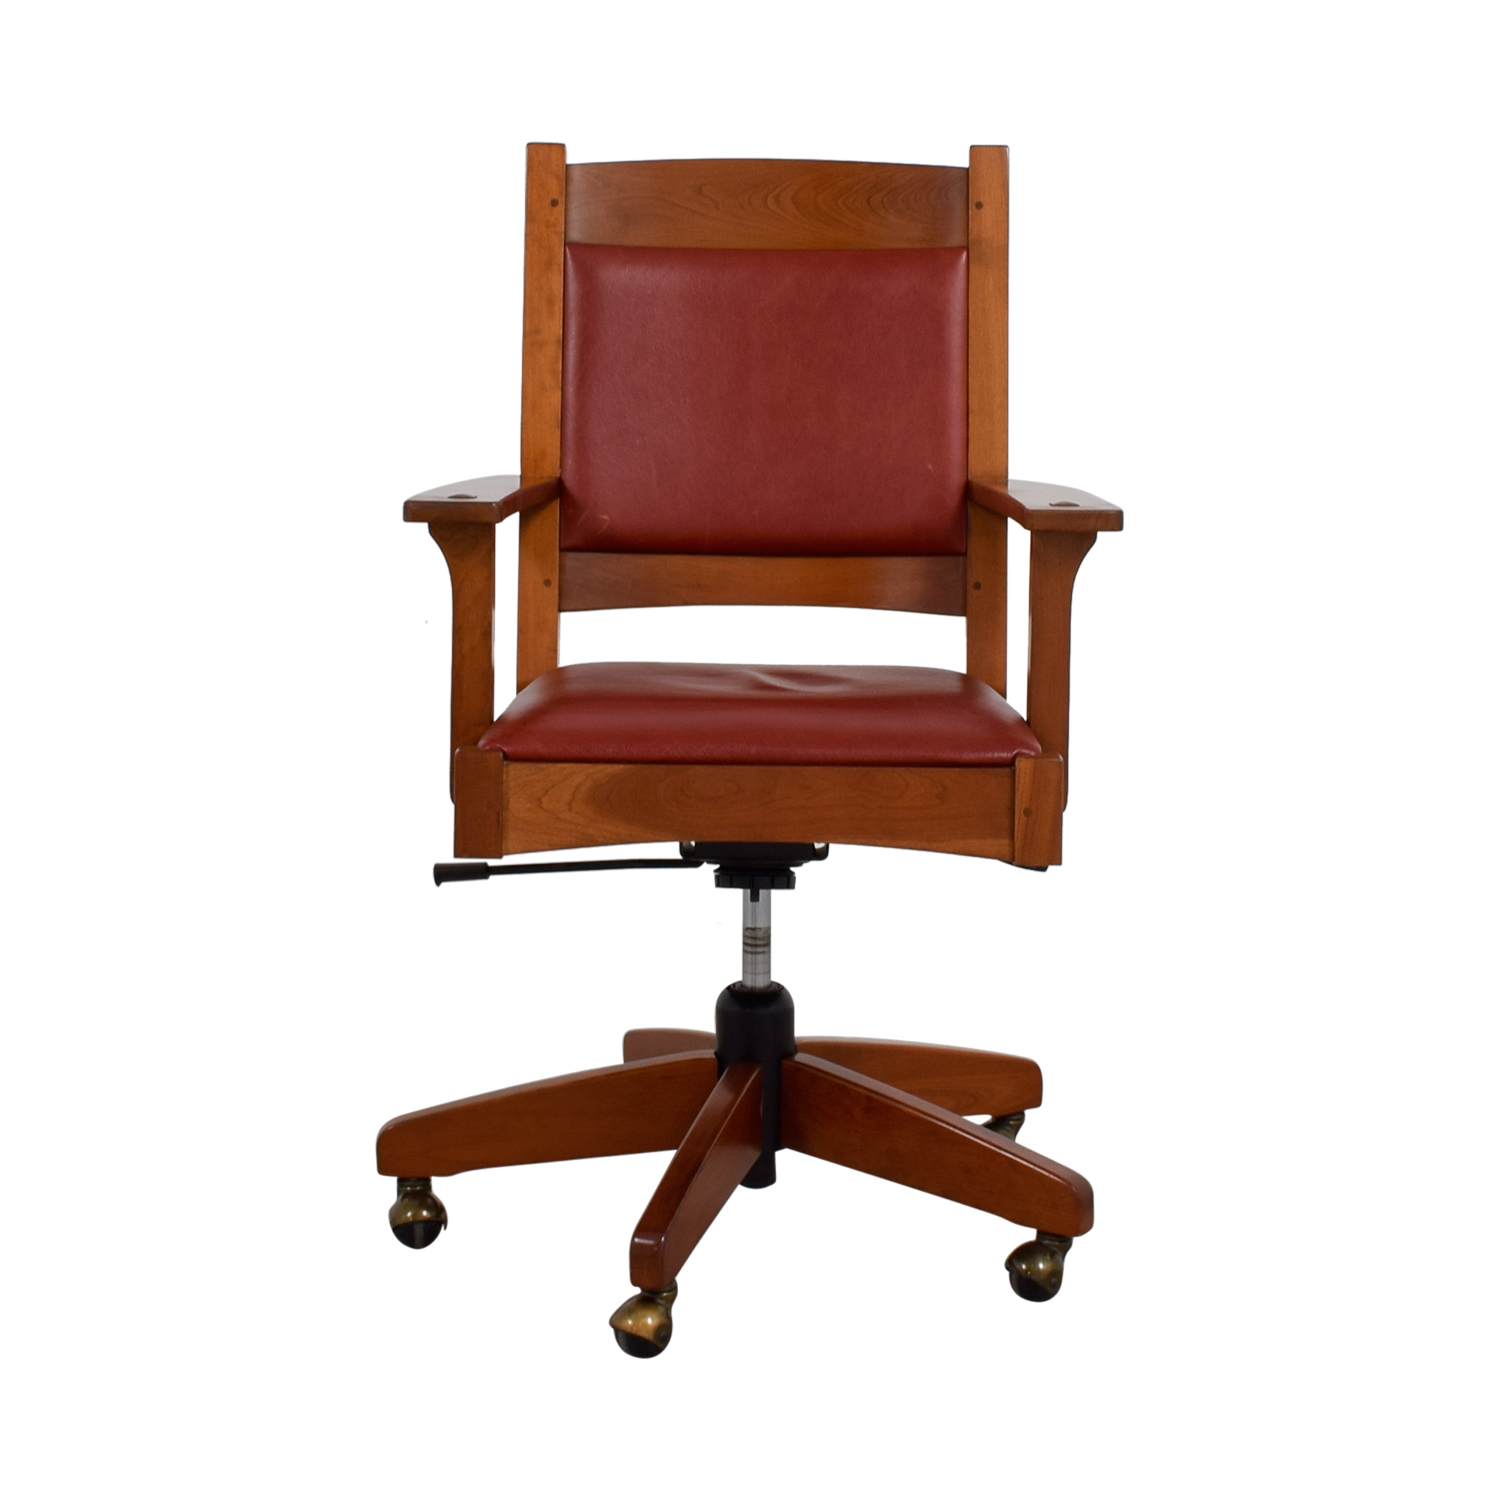 Stickley furniture stickley furniture red leather desk chair discount